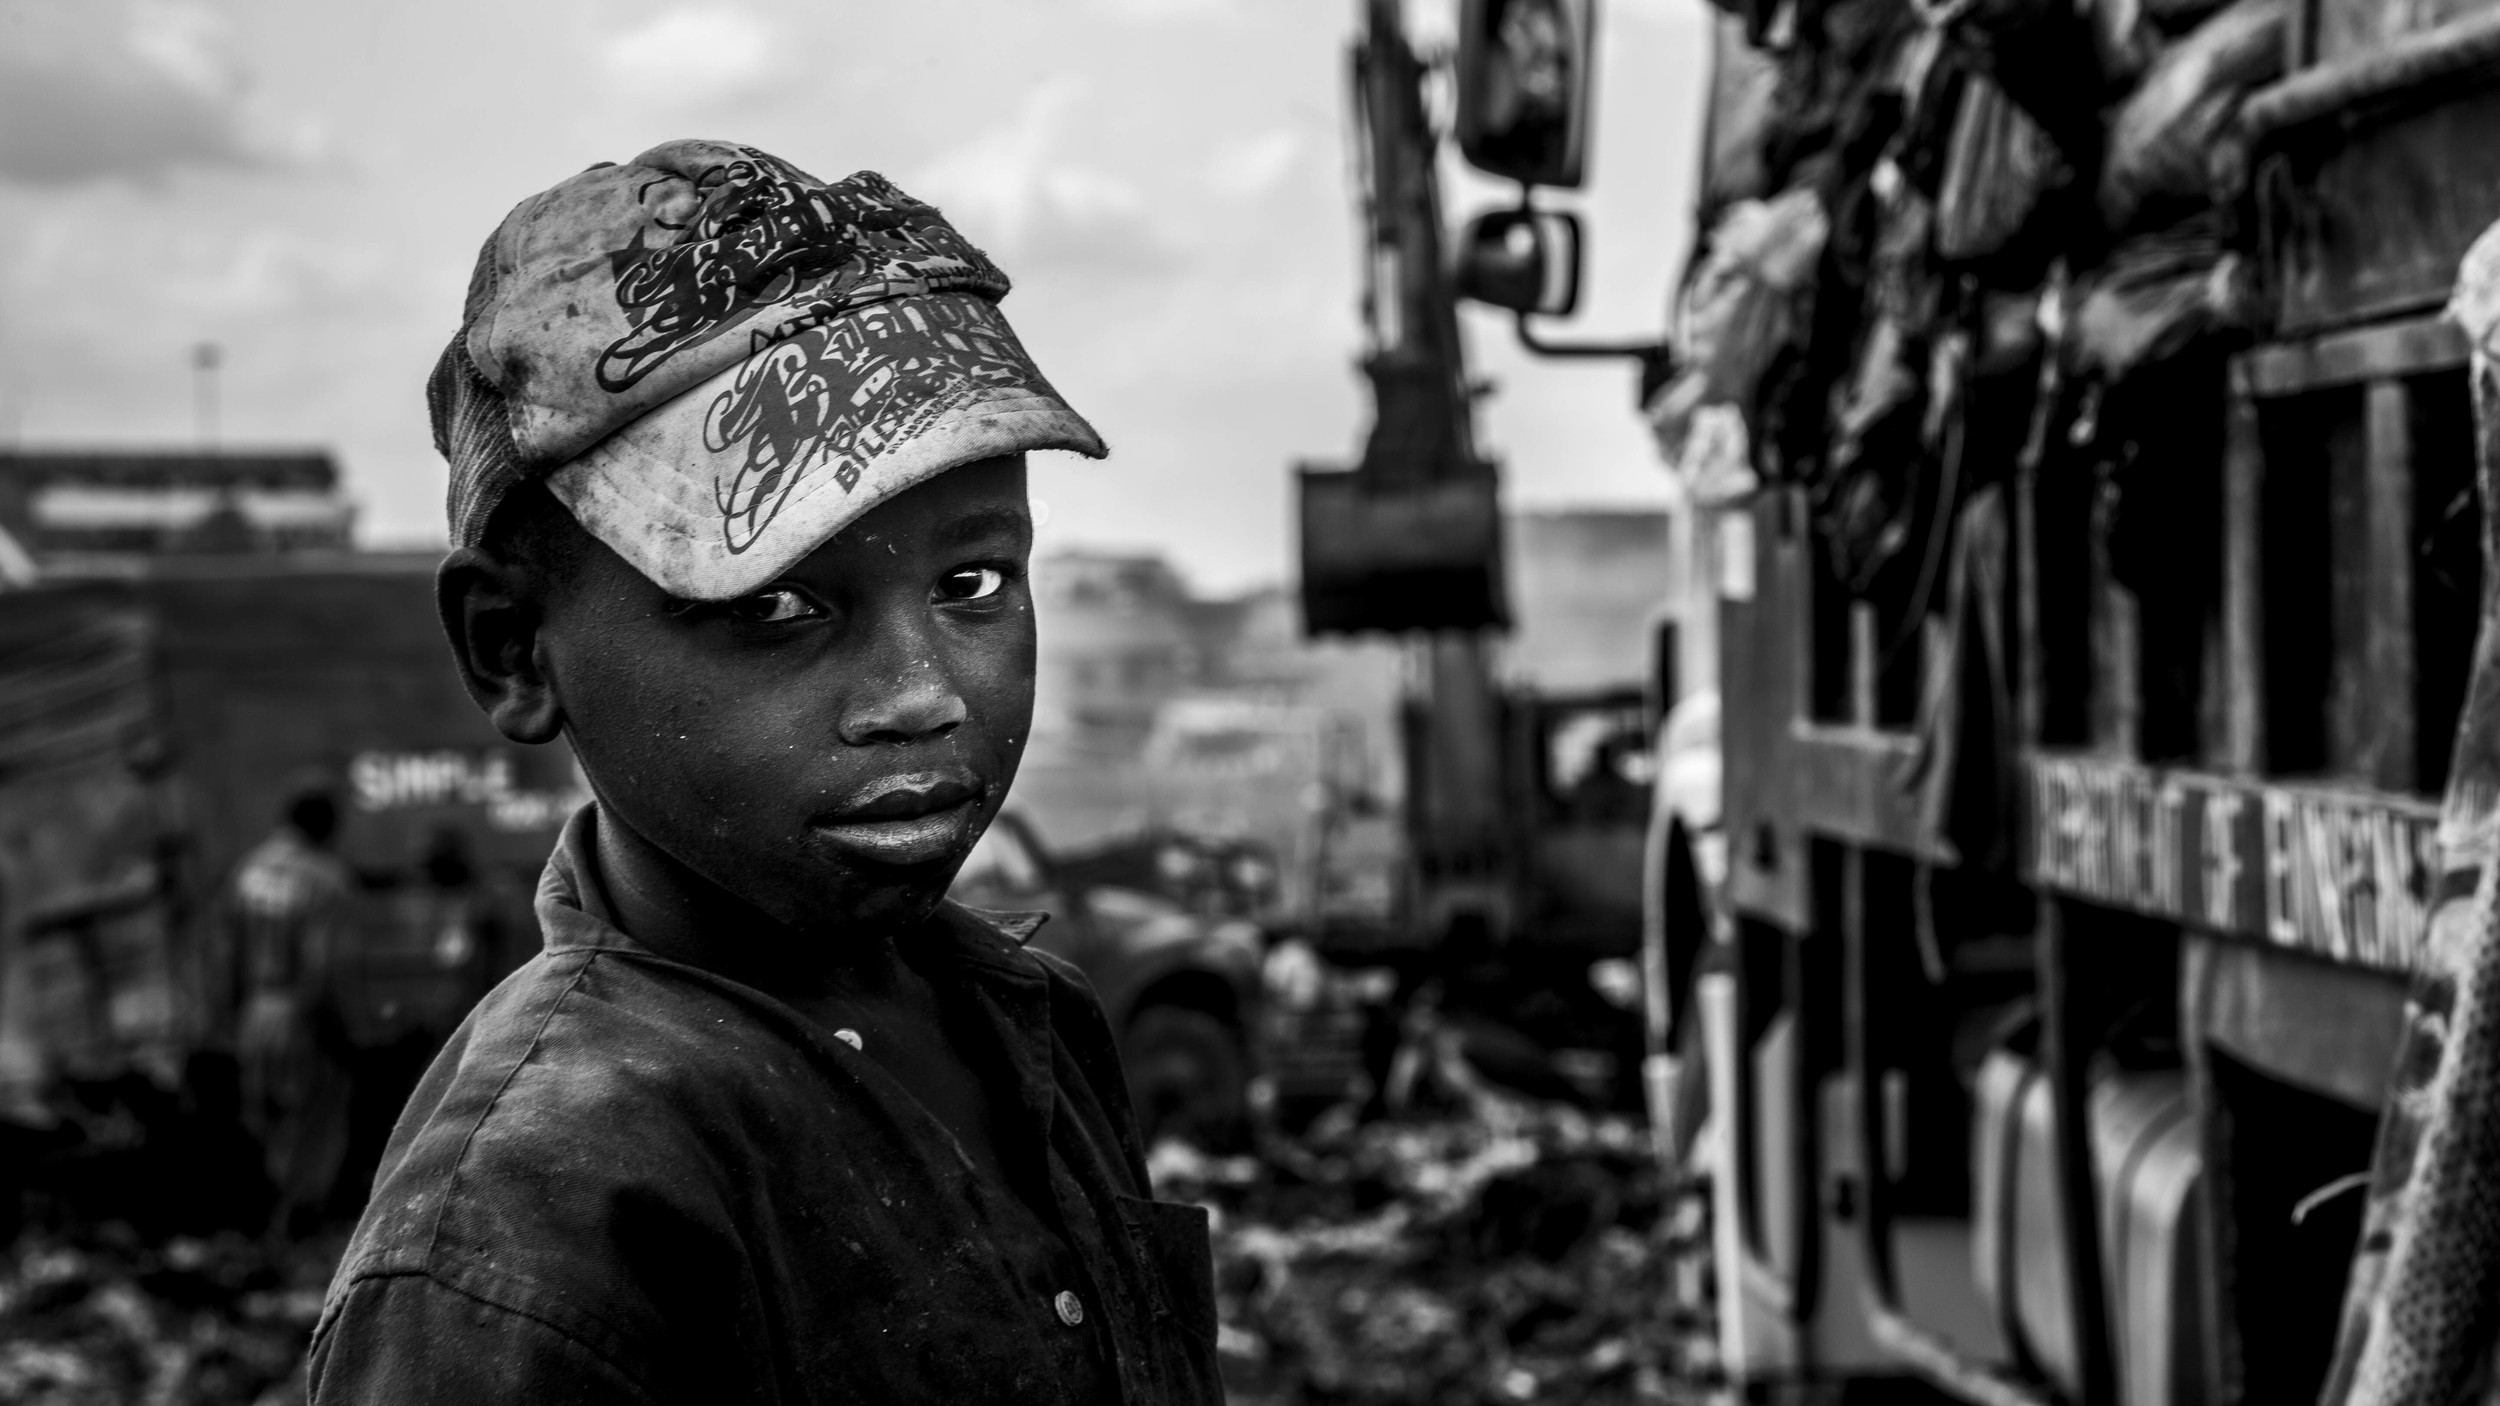 "Kevin is one of the estimated 3,000-6,000 children or ""chokora"" who depend on scavenging from the Dandora Dumpsite for their livelihood. A 2007 UNEP study indicated that 30% of the children tested had heavy metal poisoning, while half of children had blood lead levels equal to or exceeding internationally accepted toxic levels and/or suffered from respiratory problems - upper respiratory tract infections, chronic bronchitis, asthma, fungal infections and so on."